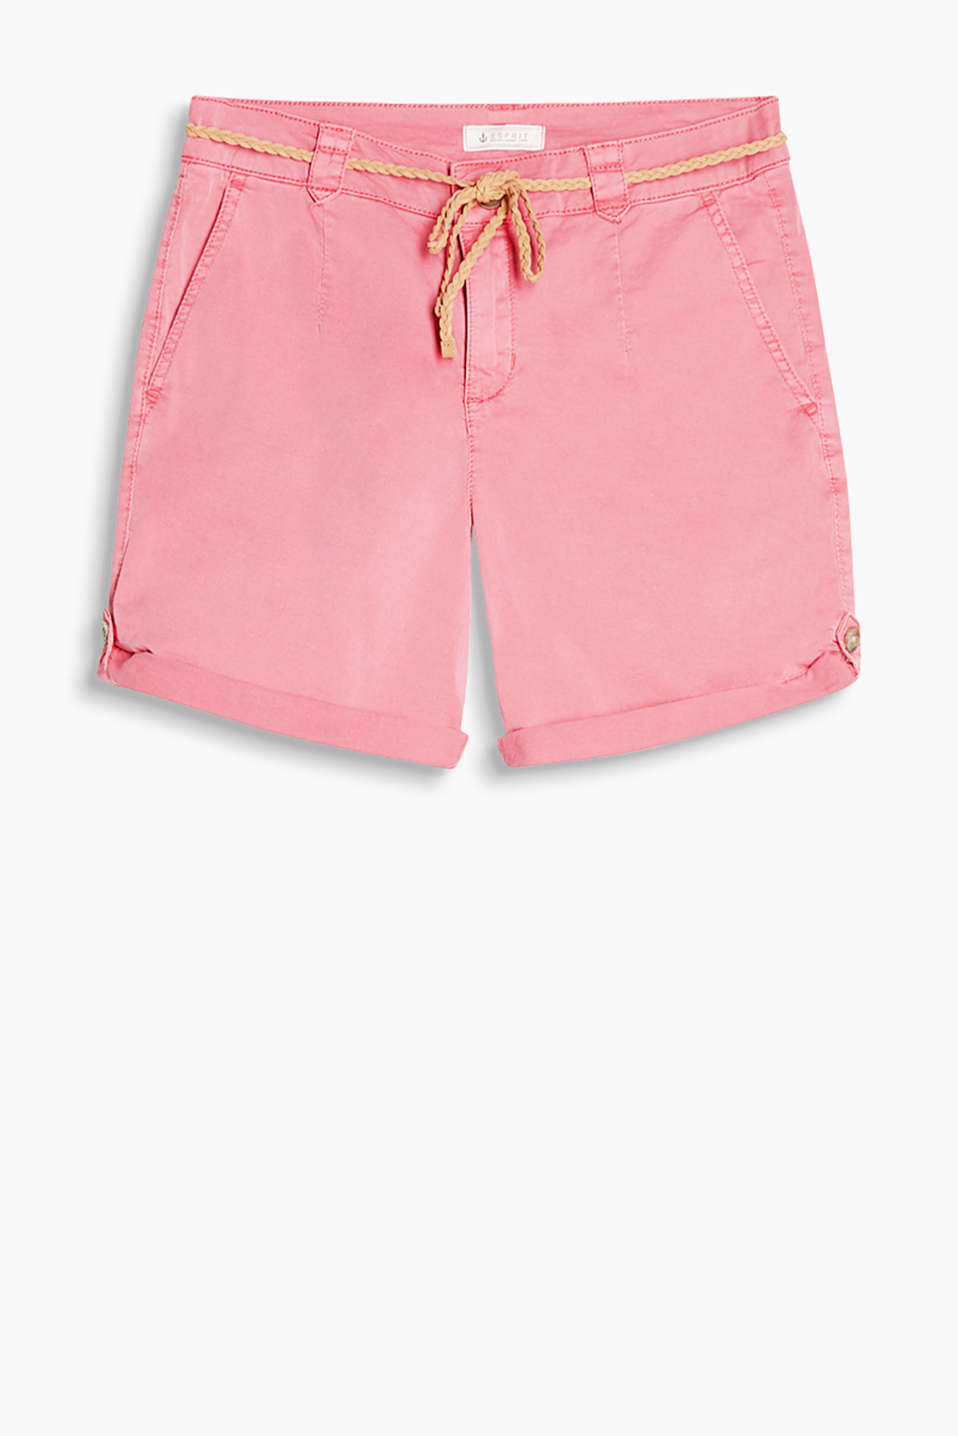 Shorts with an adjustable leg length and delicate braided belt, cotton/stretch